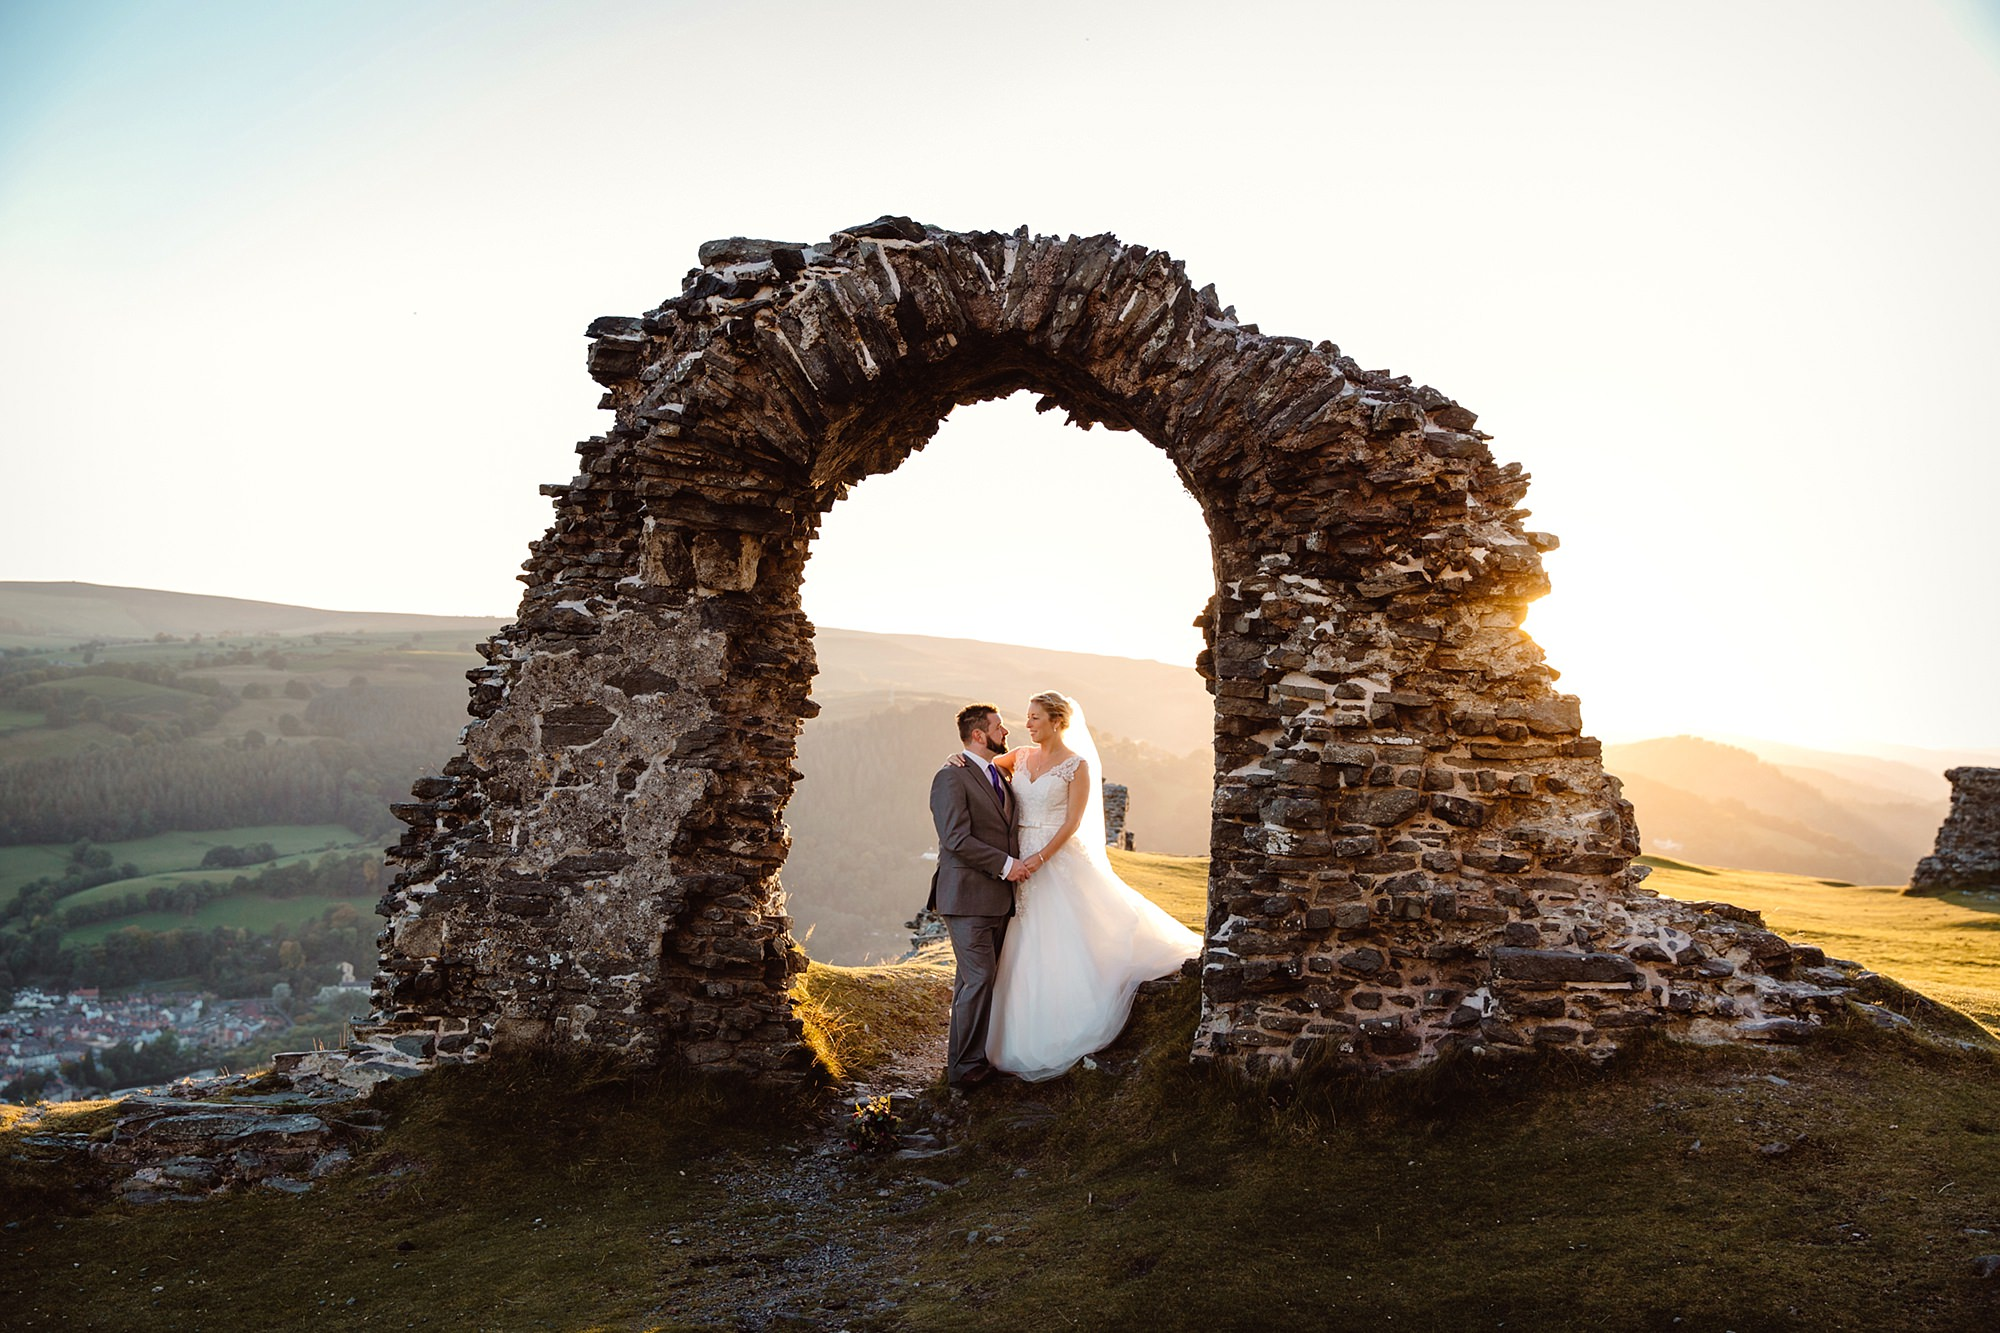 Castell dinas bran wedding photography bride and groom stand under ruined castle arches